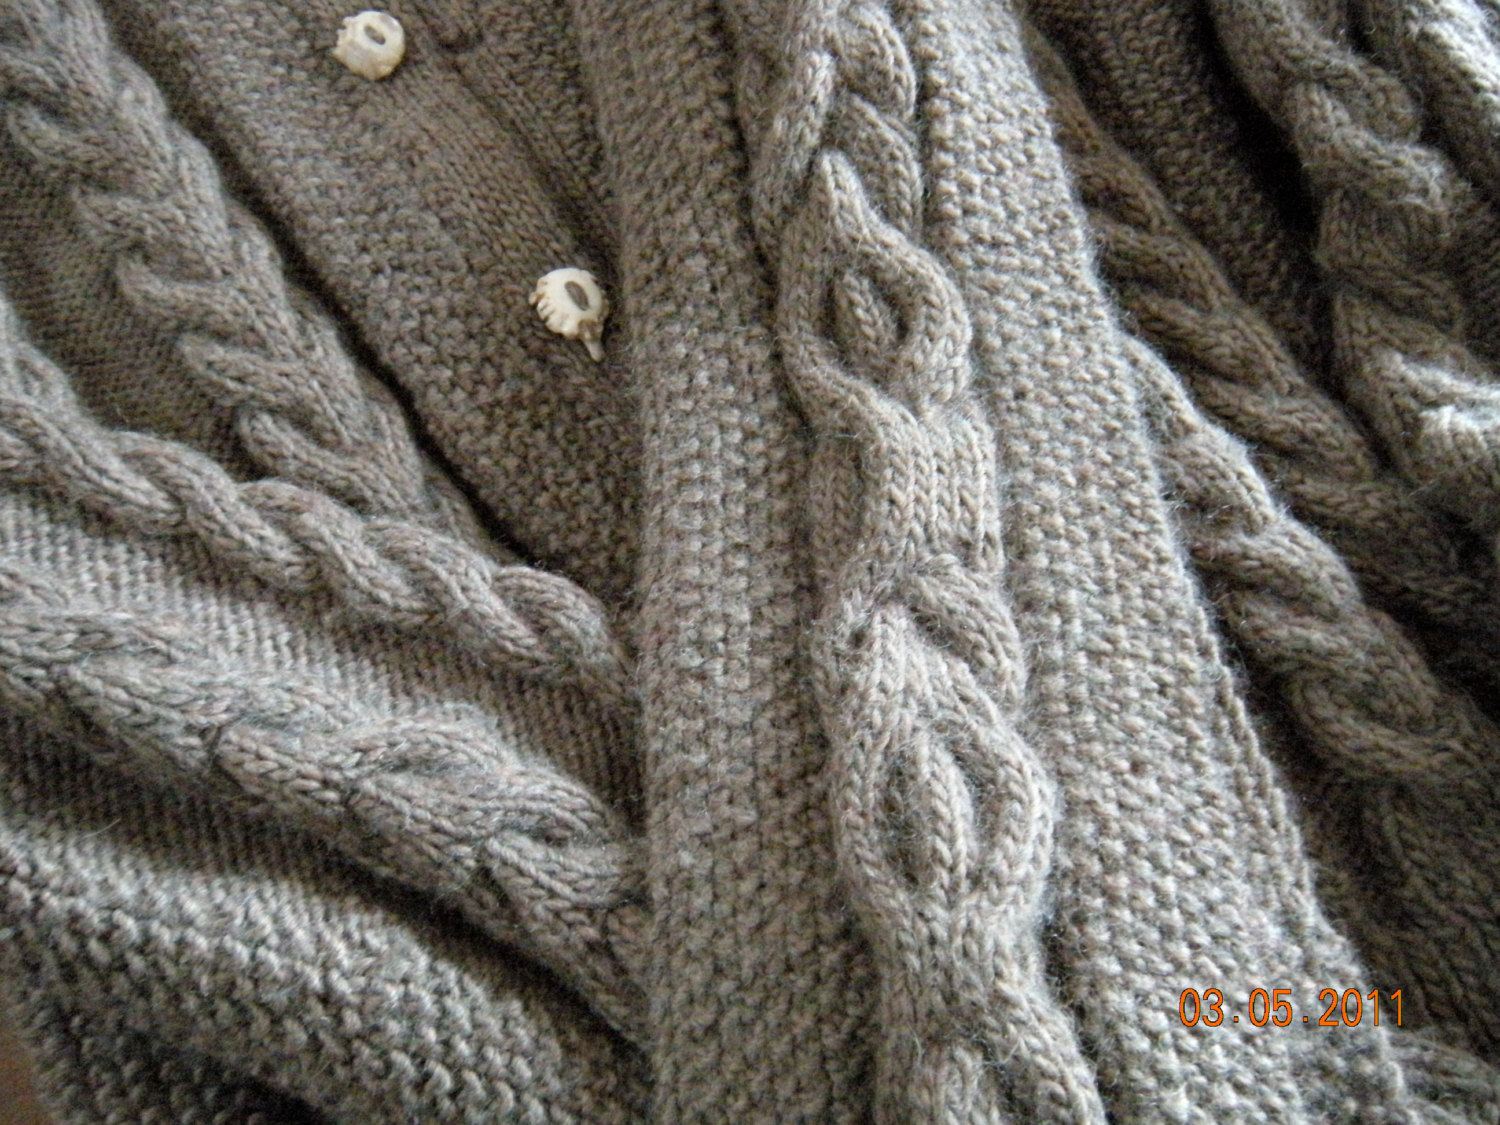 Knitting Stitch Variations : Knitting mulberryshoots